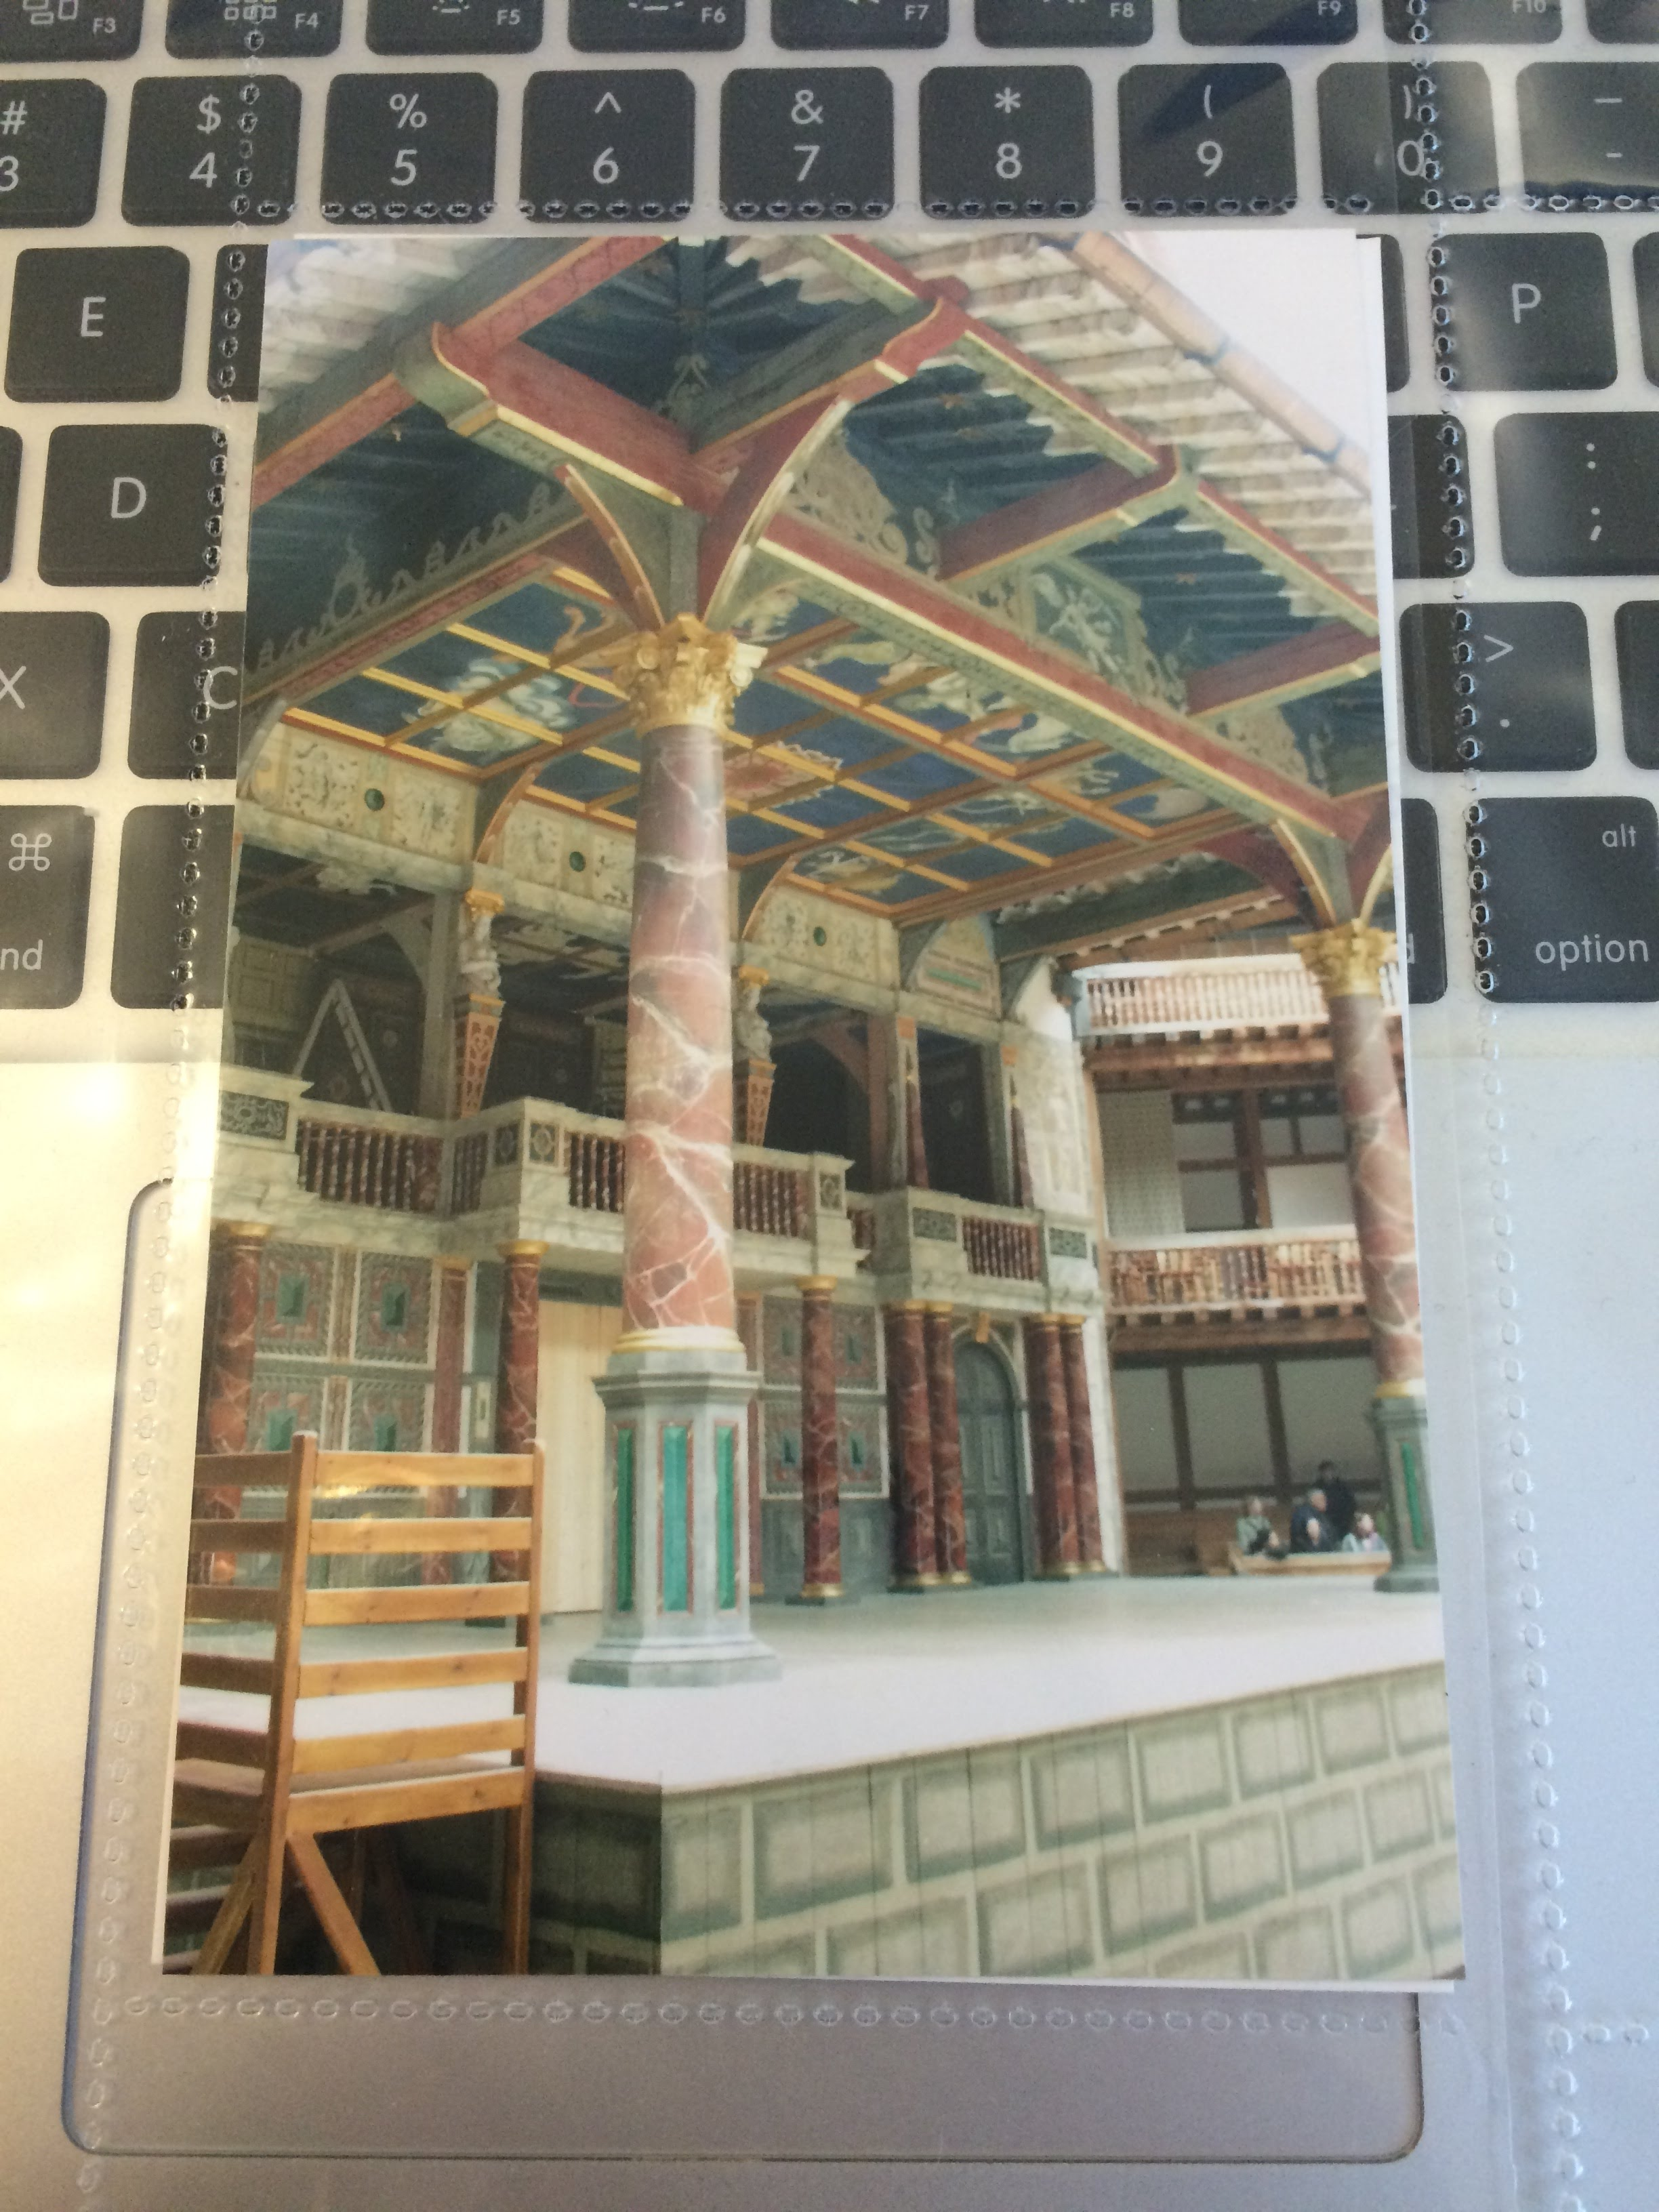 essays on the globe theatre History of elizabethan theatre in london during essays history of elizabethan theatre in there is only one detailed reconstruction of the globe from.